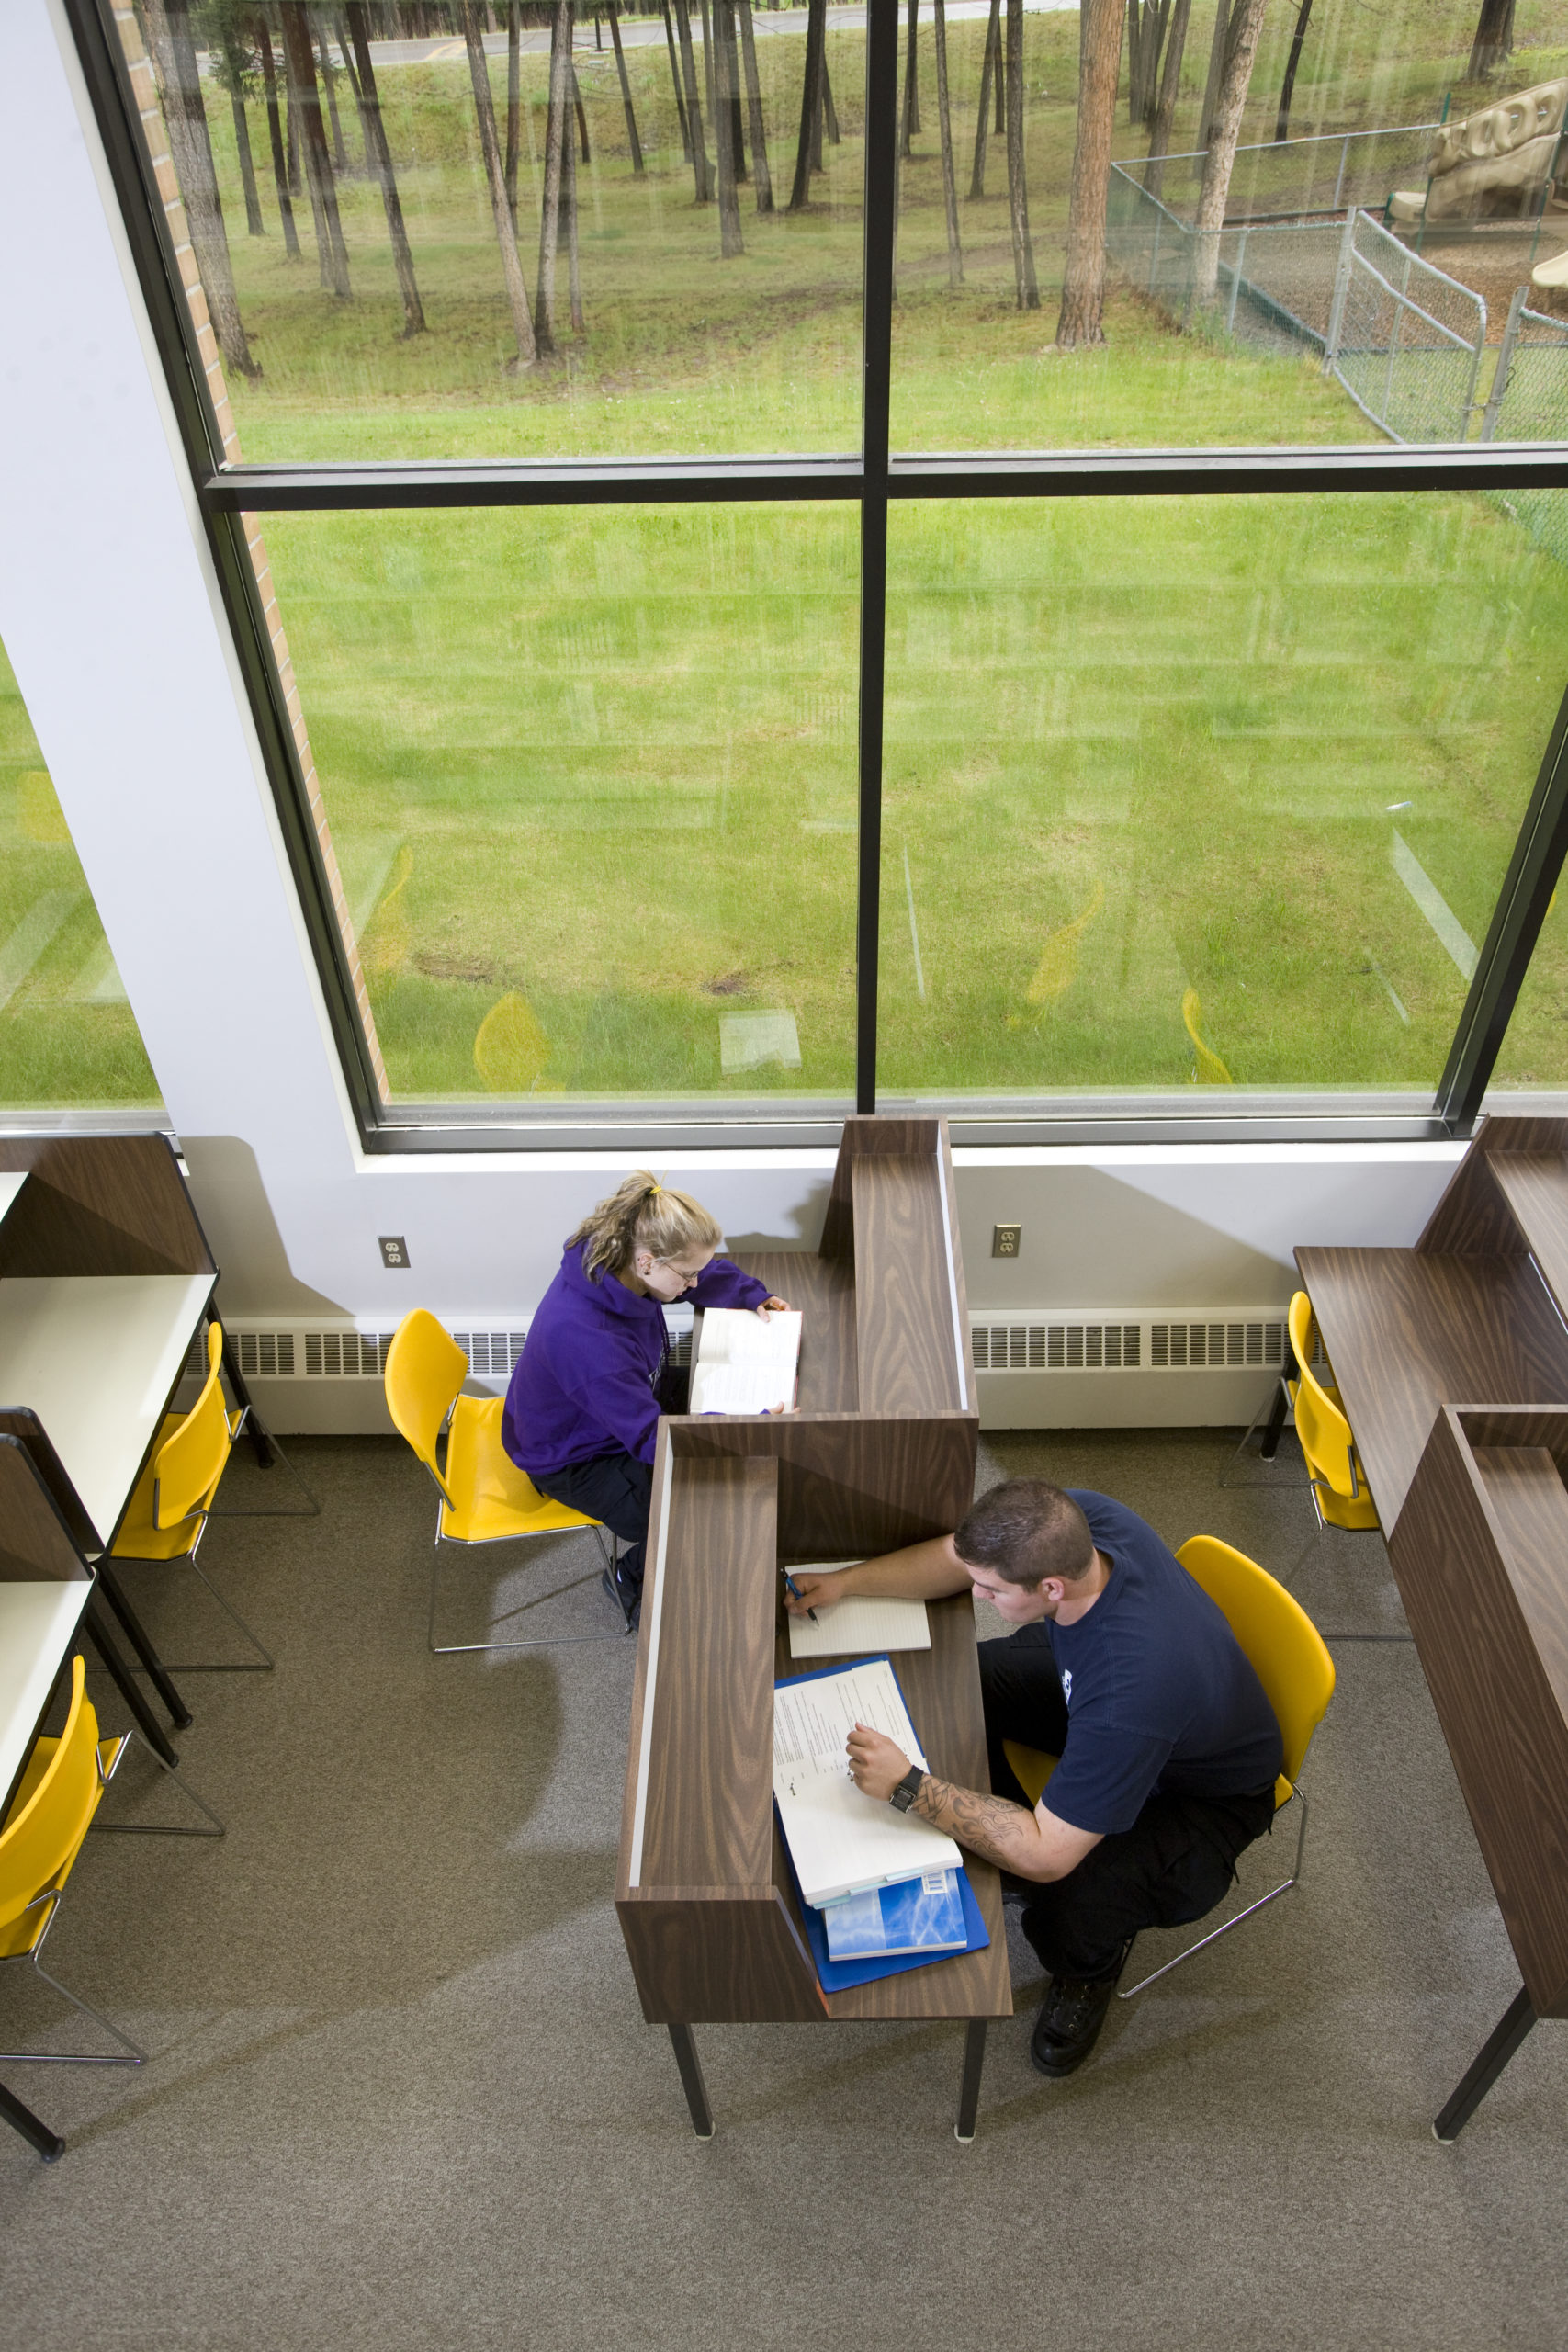 Students study an desks near big windows in the library